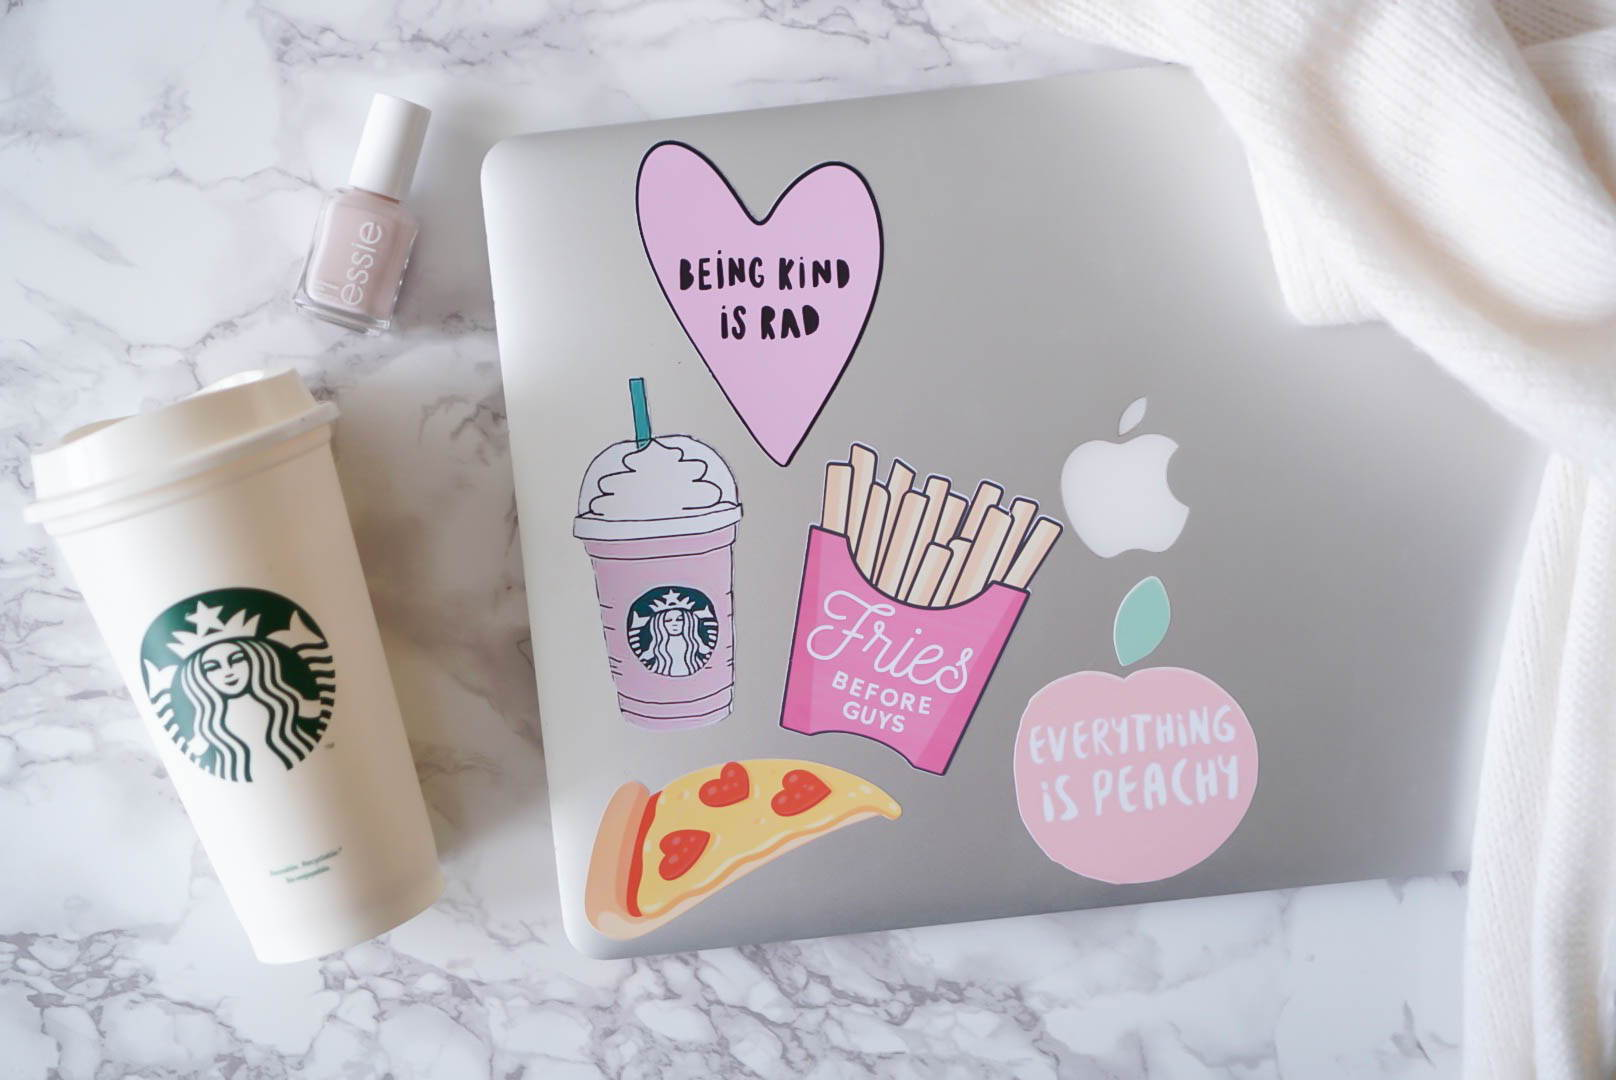 photo about Printable Adhesive Vinyl titled Do it yourself Millennial Red Laptop or computer Stickers Guidebook: How towards Hire